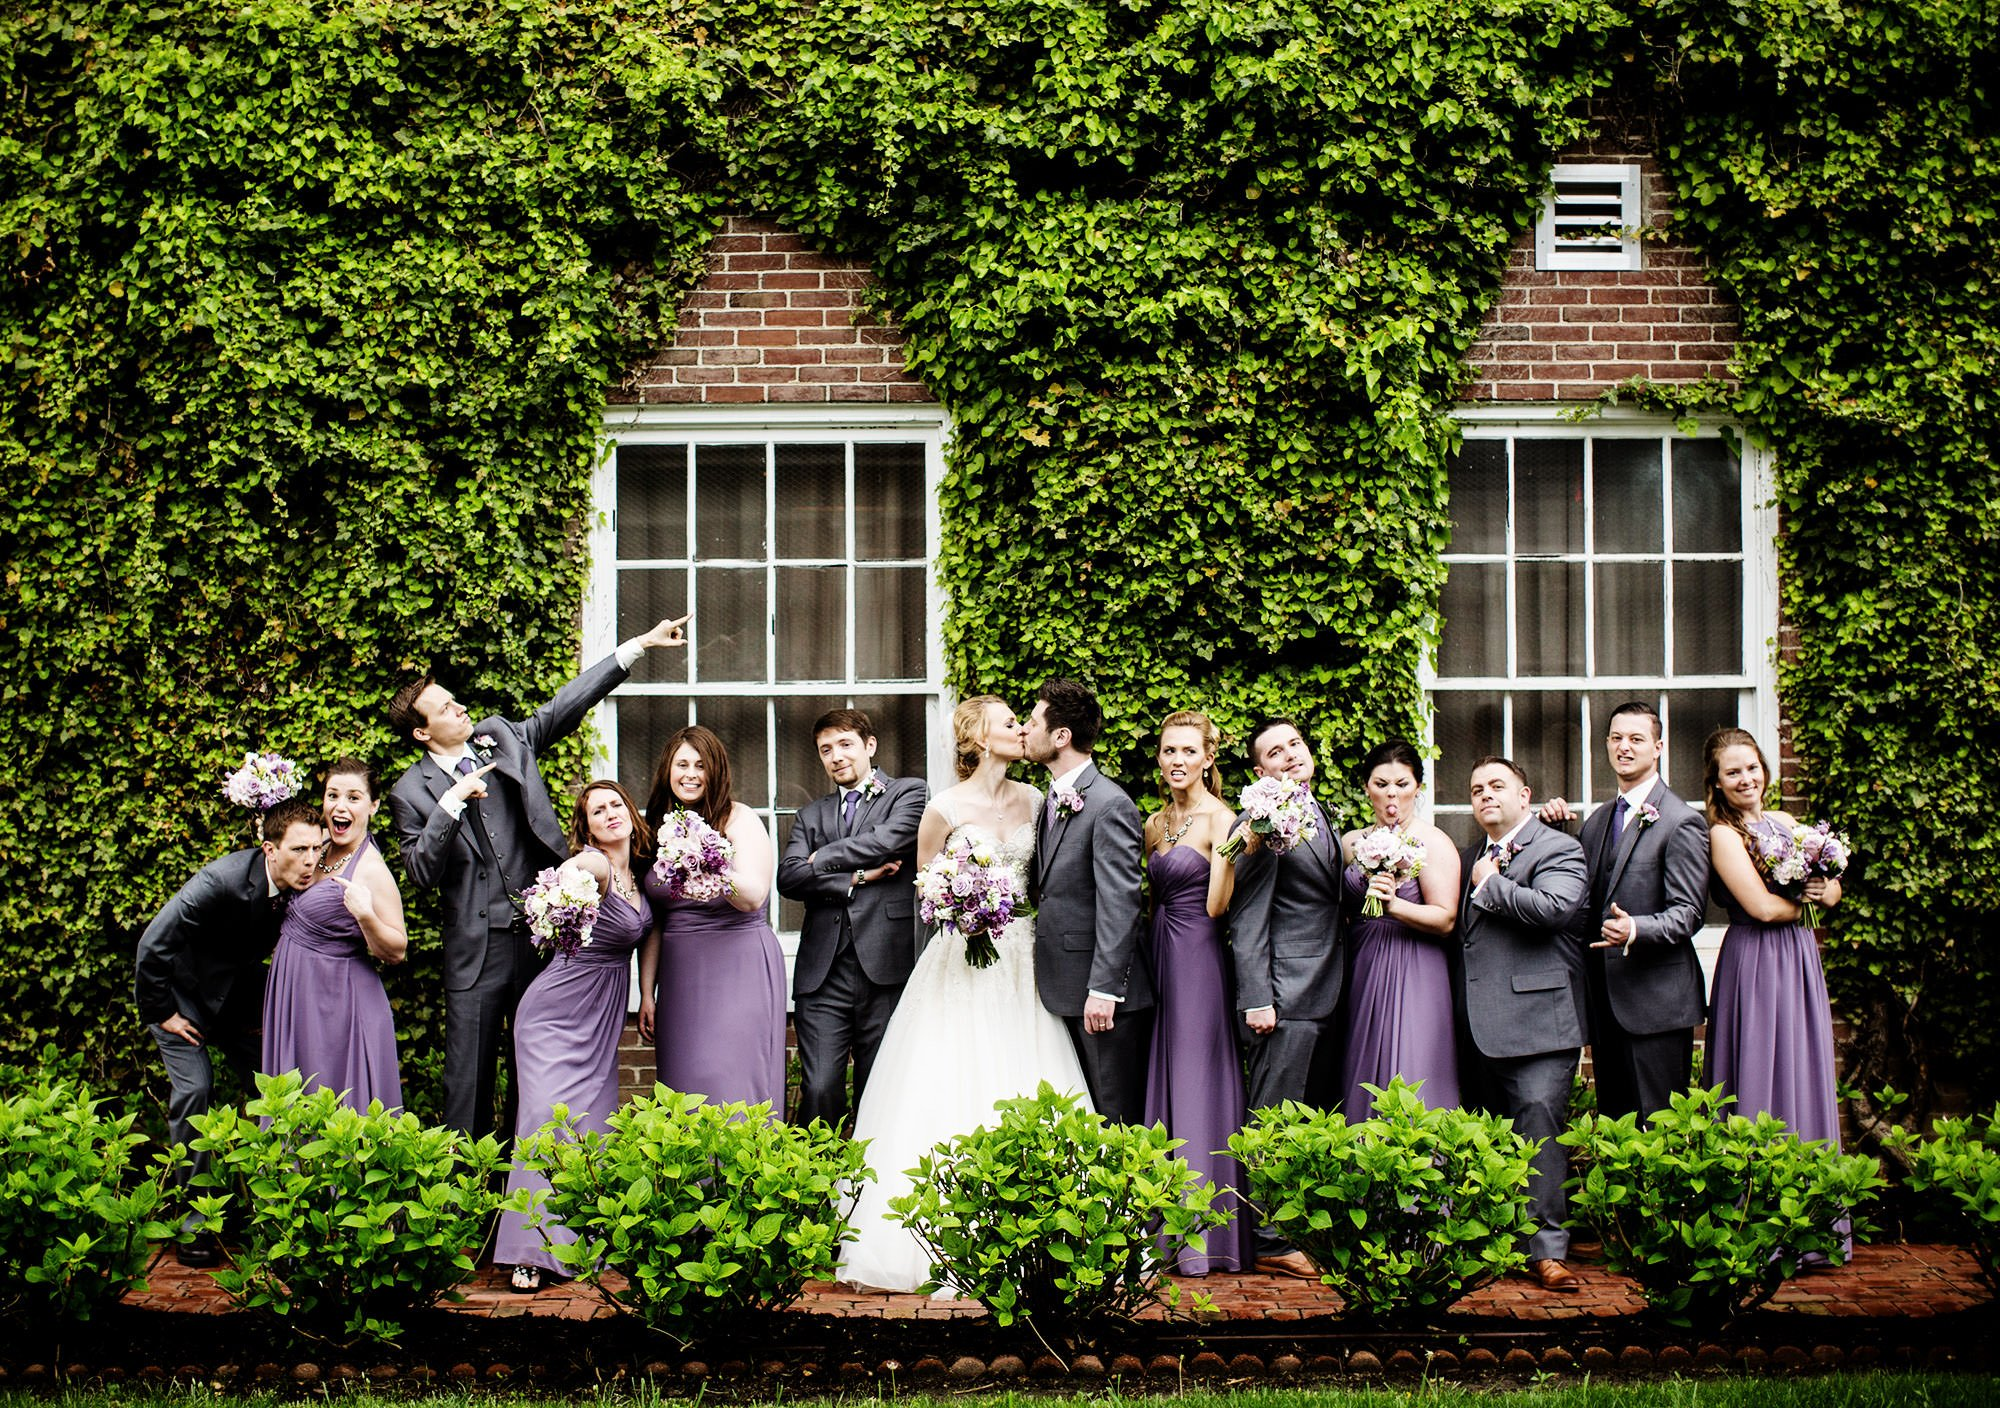 A portrait of the wedding party at this Tidewater Inn Wedding in Easton, MD